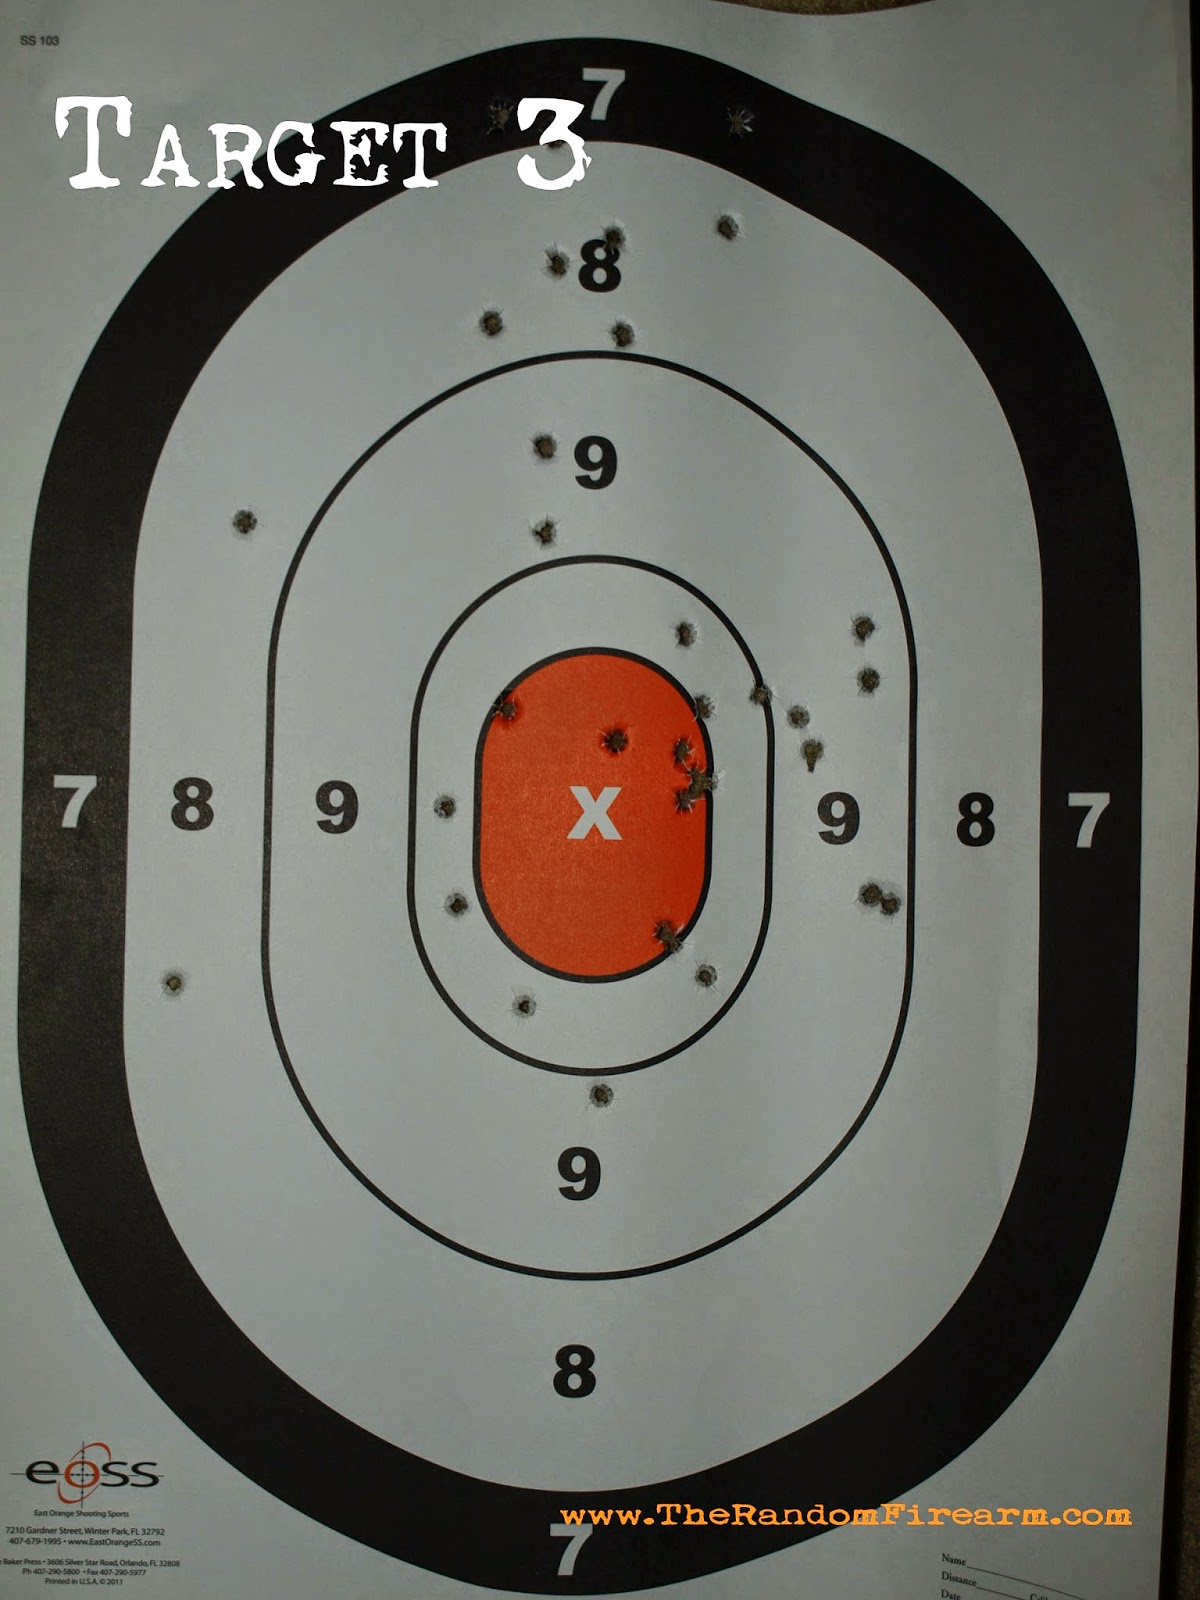 sccy cpx 2 shooting review diy upgrade galloway precision random firearm db productions dylan benson 9mm concealed carry east orange shooting sports